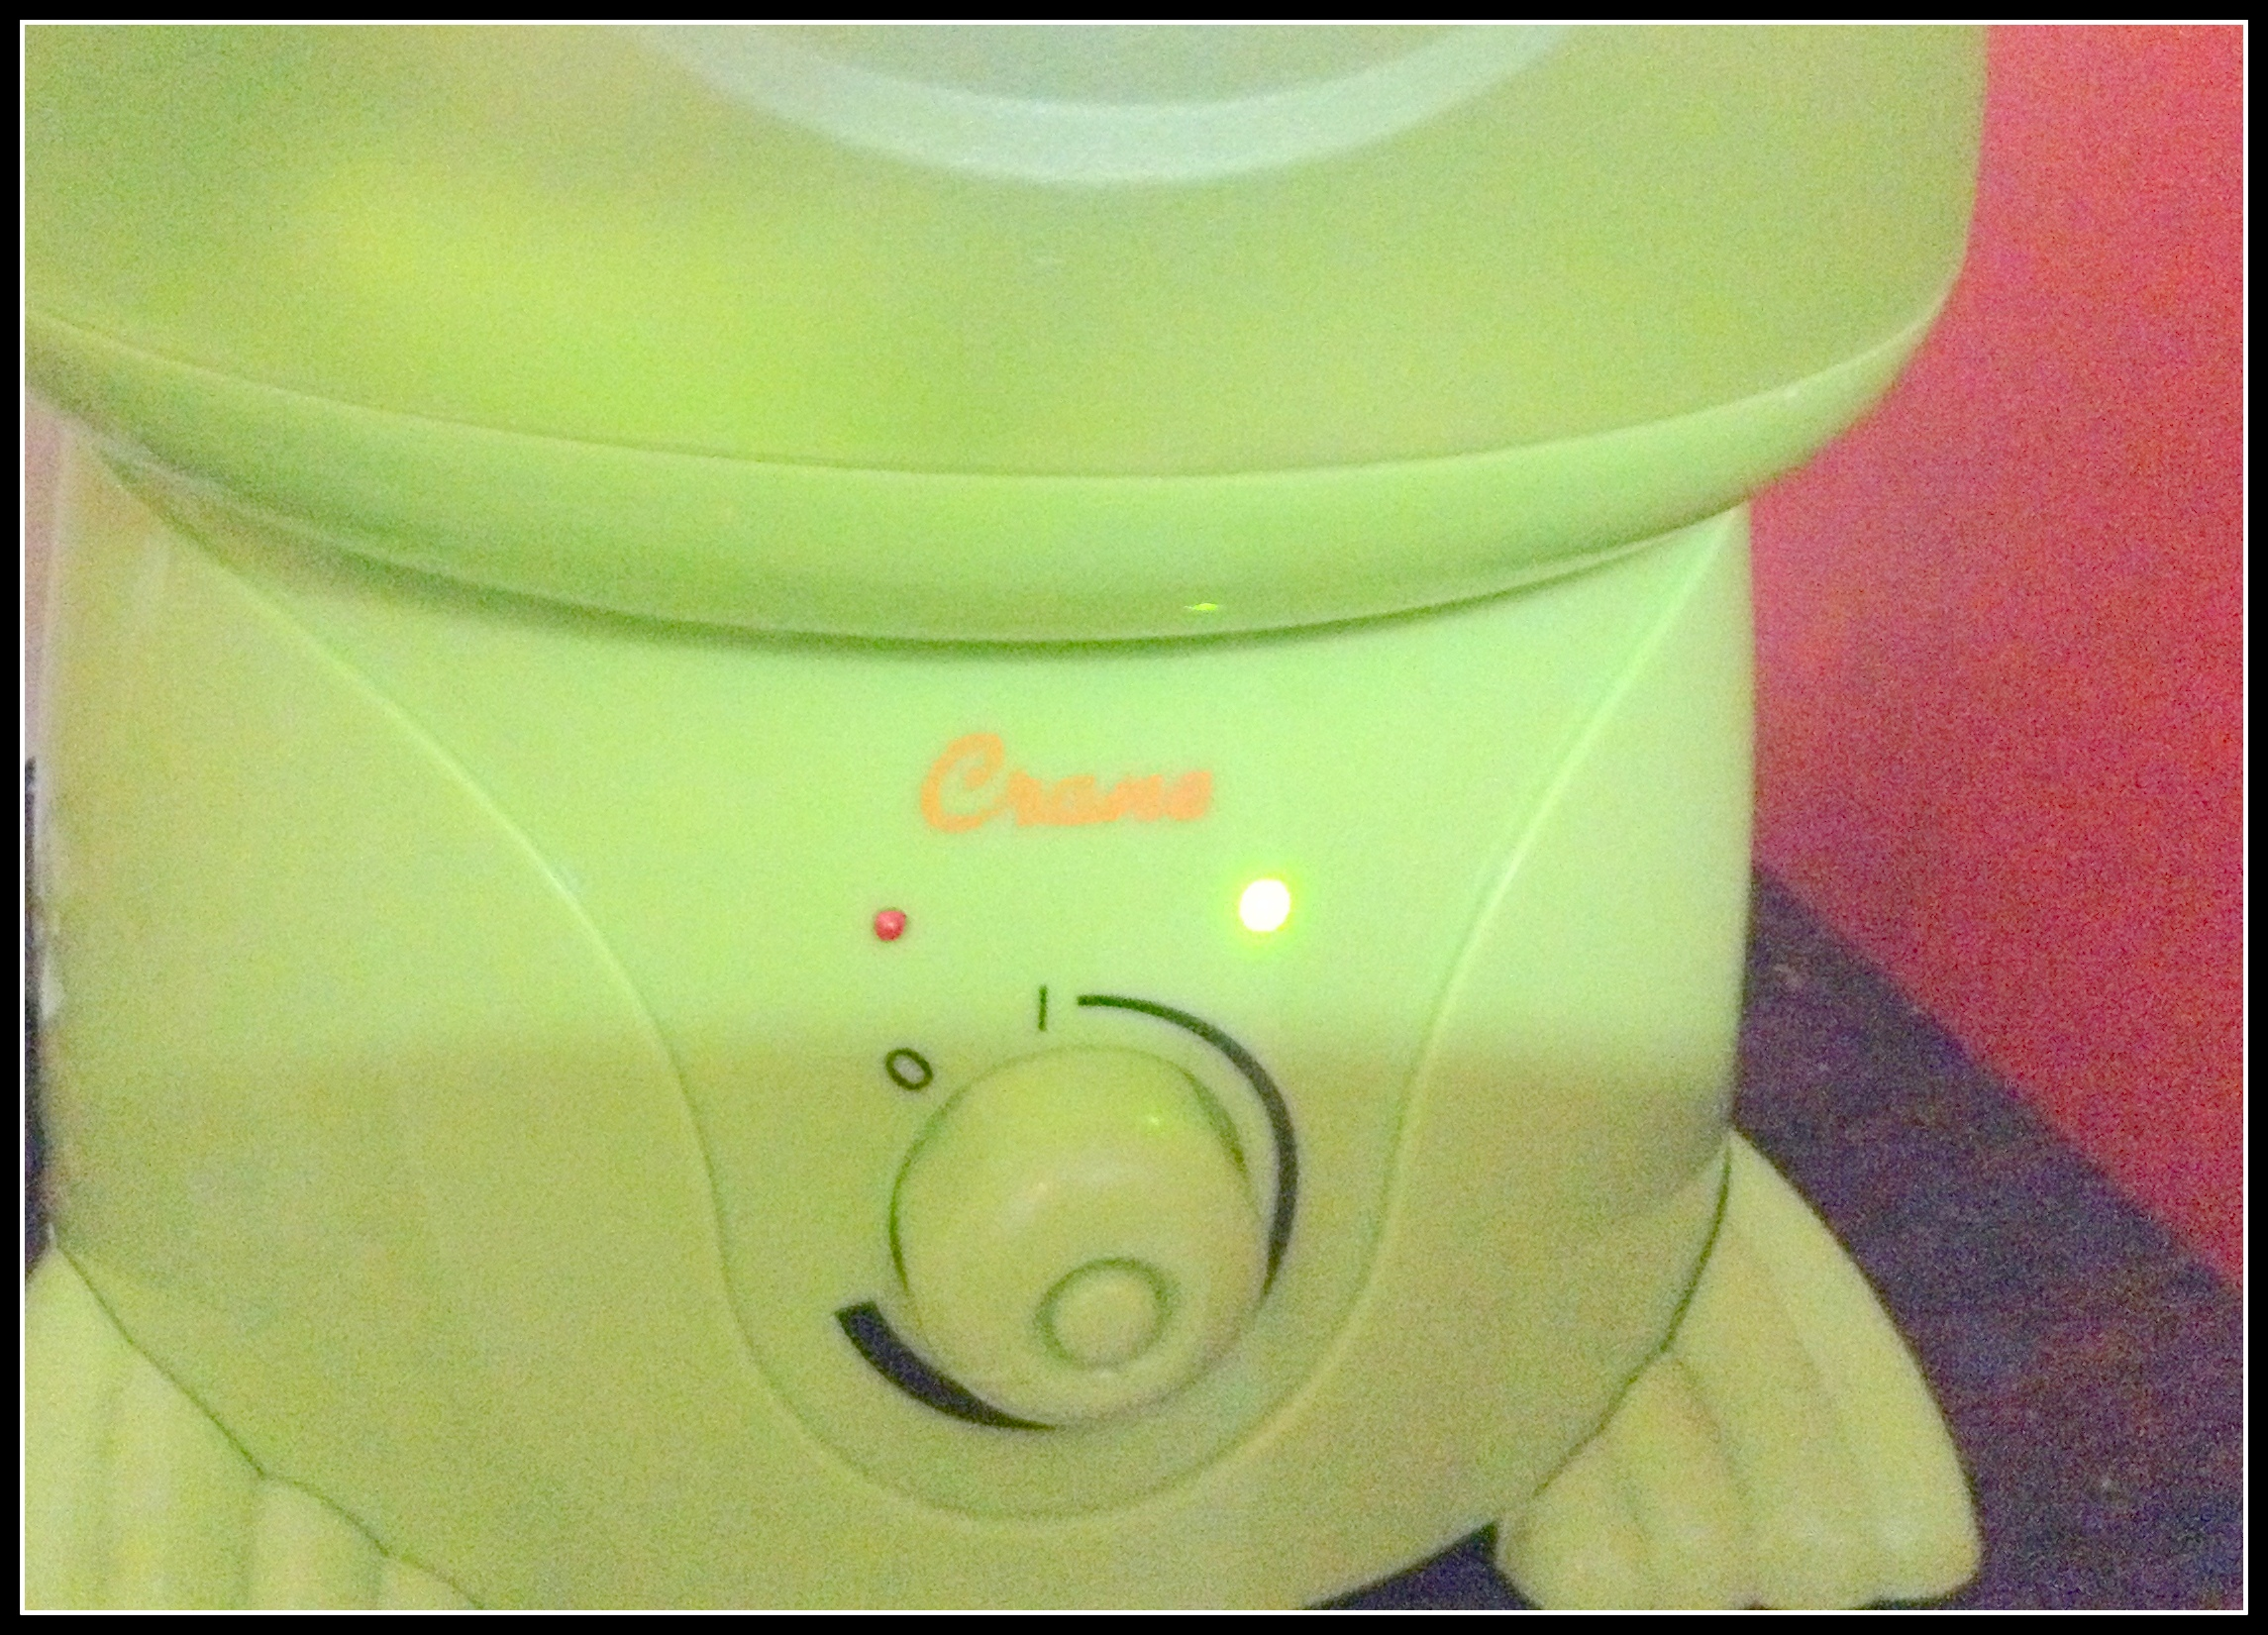 Review of Crane Ultrasonic Humidifier MommyswallMommyswall #7A9833